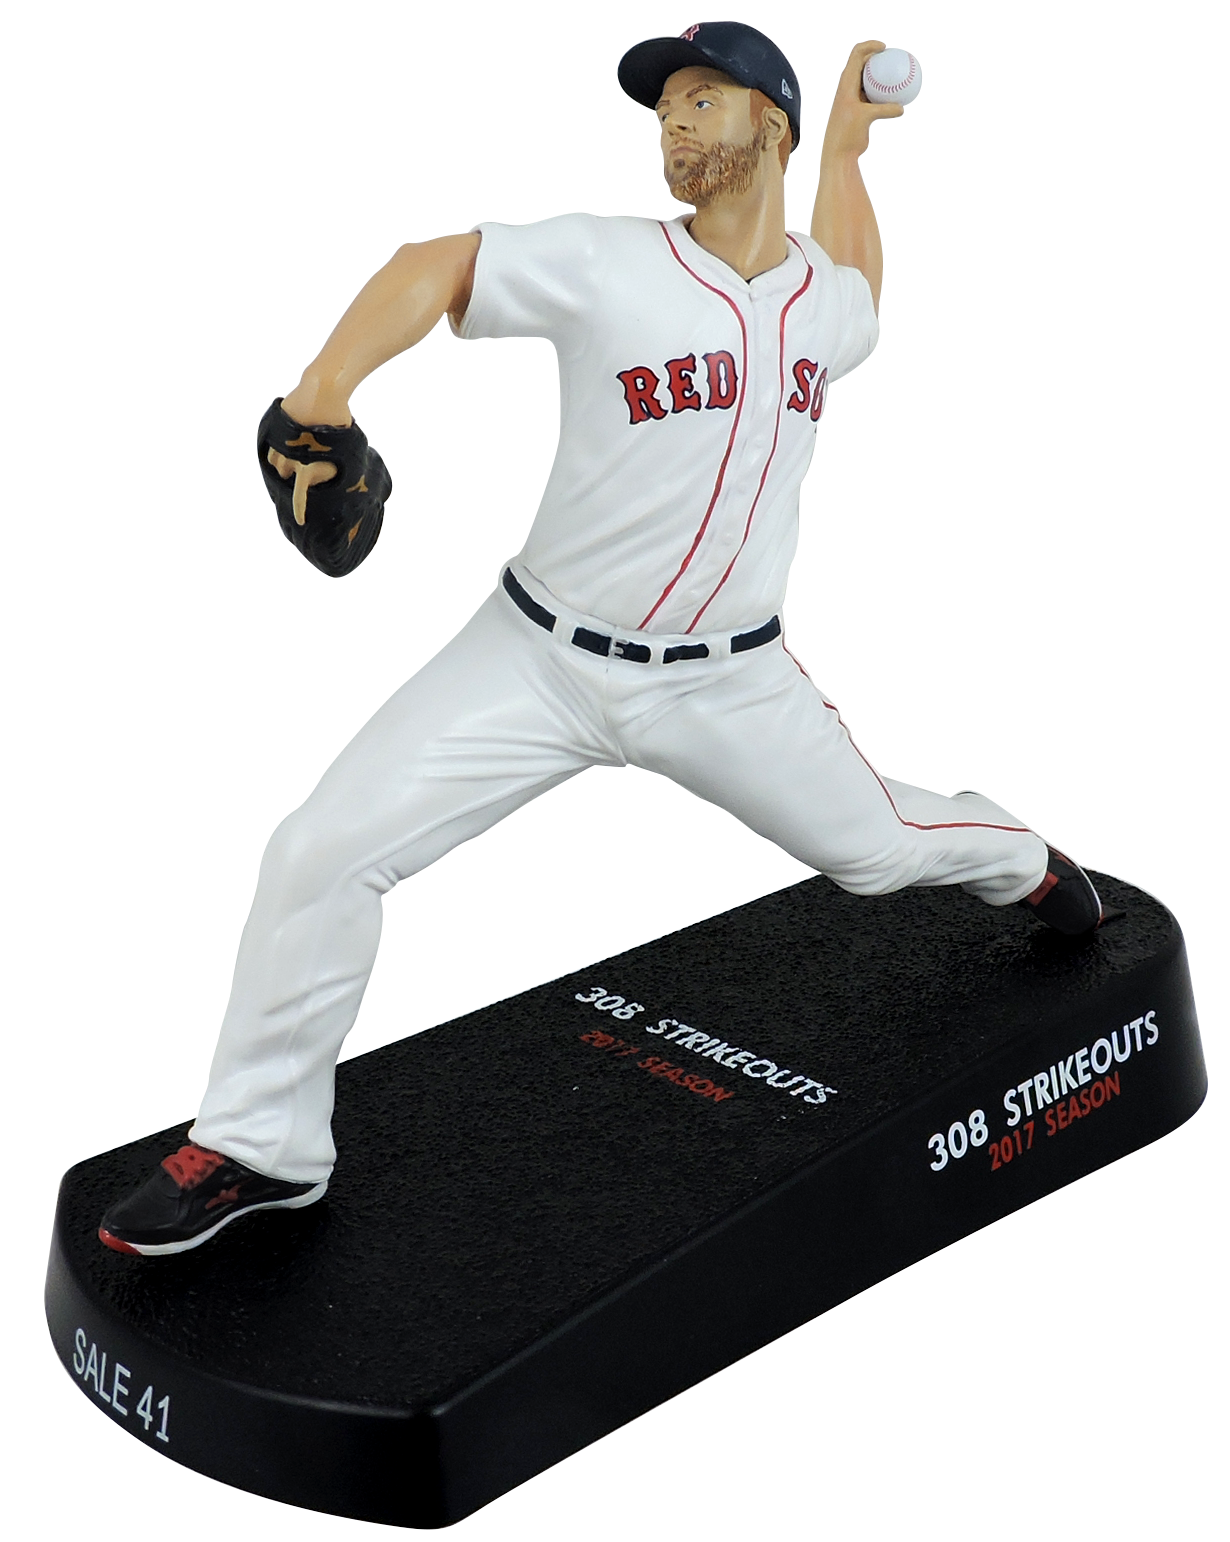 Chris Sale - Limited Edition 308 Strikeouts Image